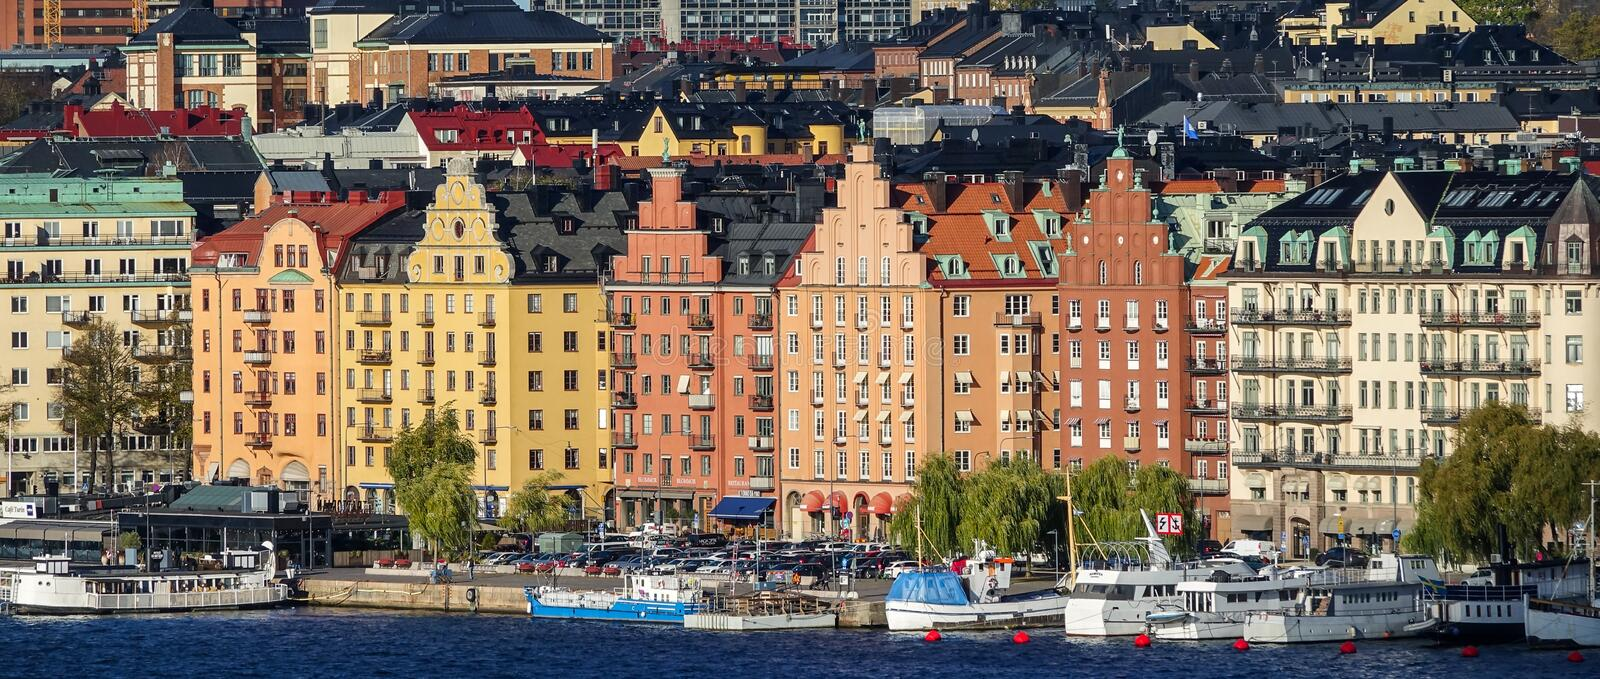 Colorful old houses on Kungsholmen, island in Lake Mälaren in Sweden, part of central Stockholm. stock photography